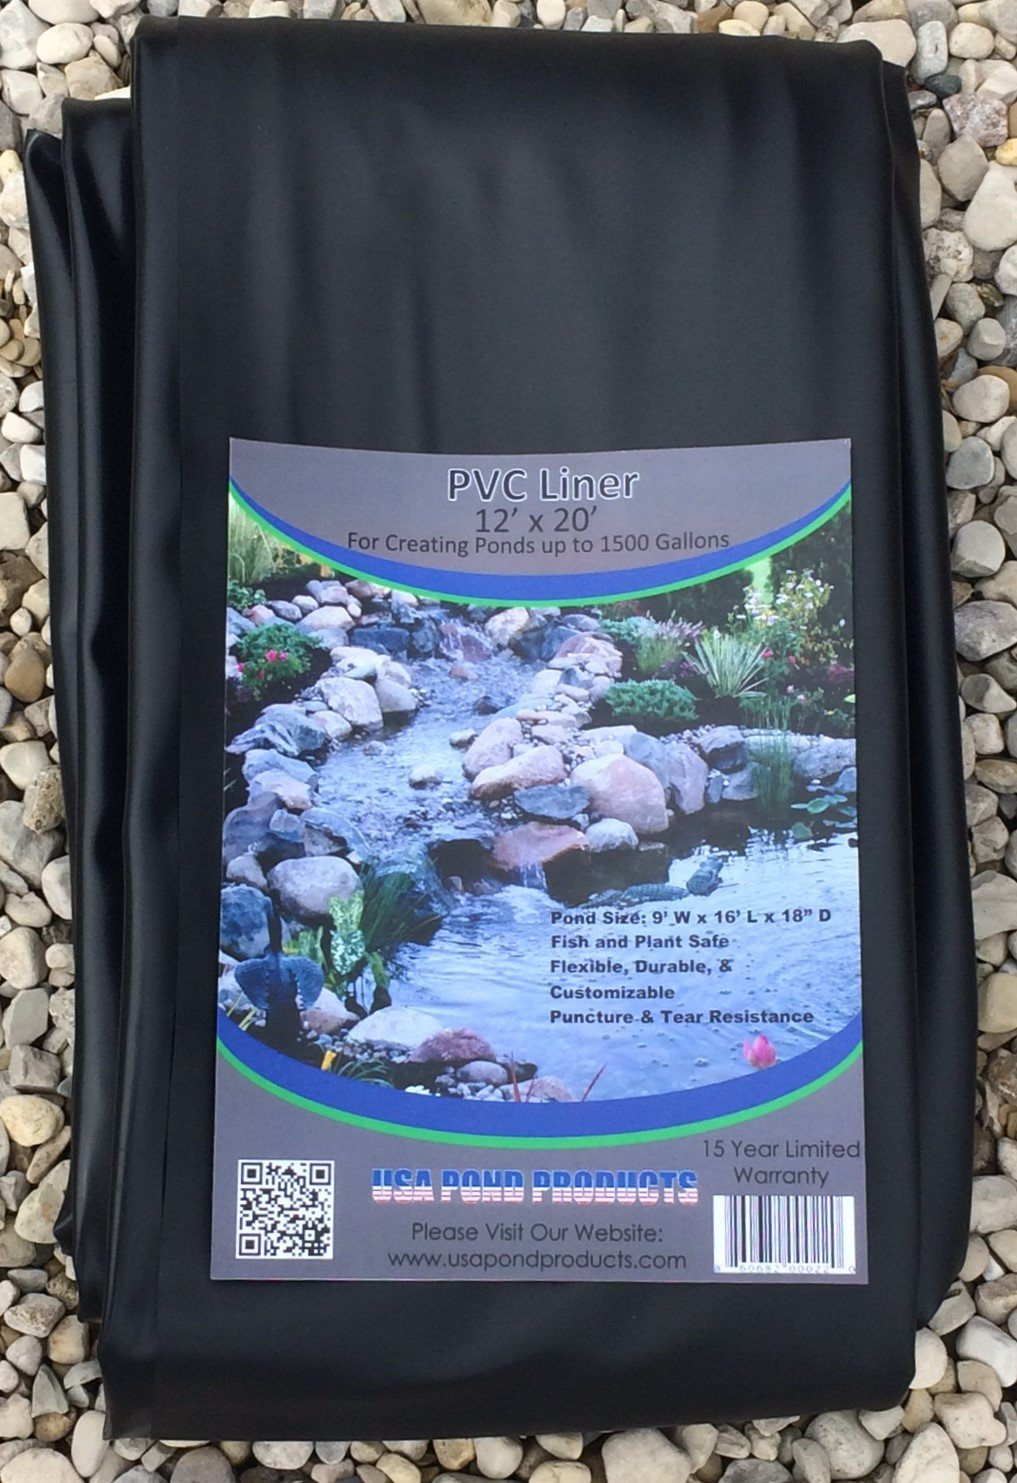 Pond Liner - 12' x 20' Black for Koi Ponds and Water Gardens